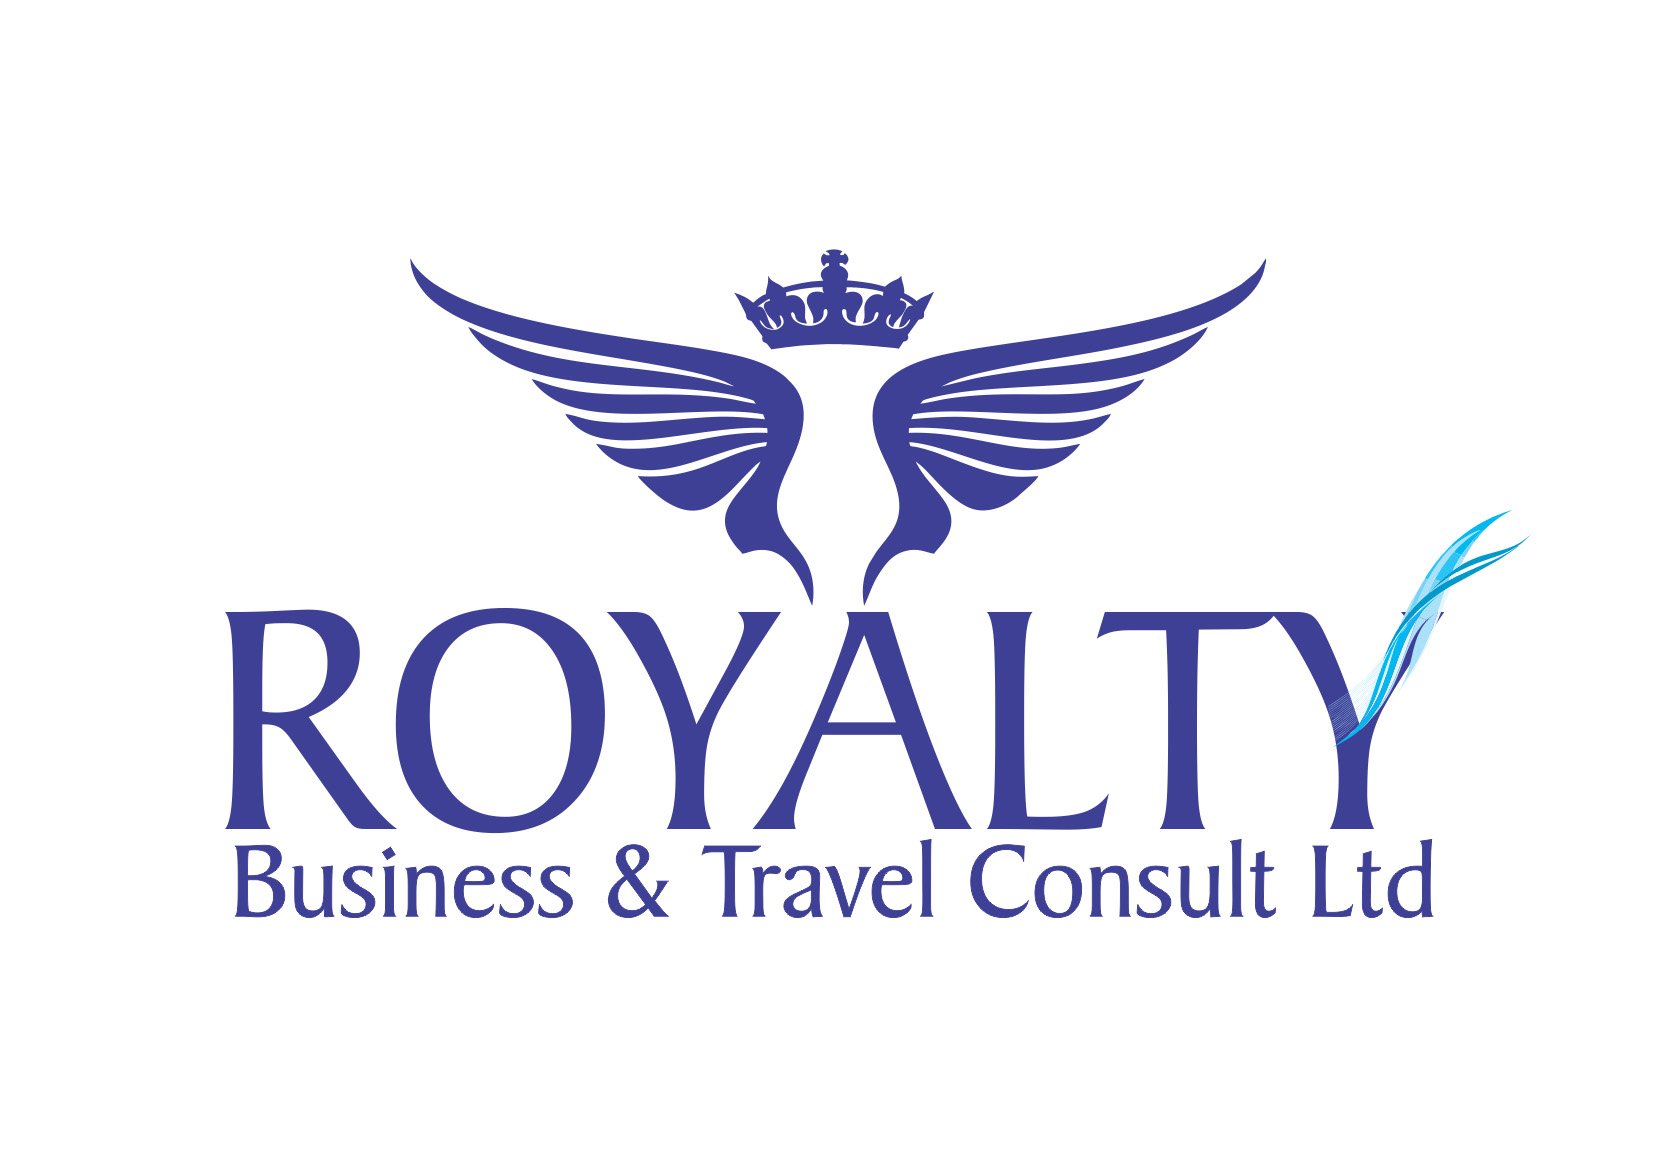 Royalty Business Travel Consult ltd